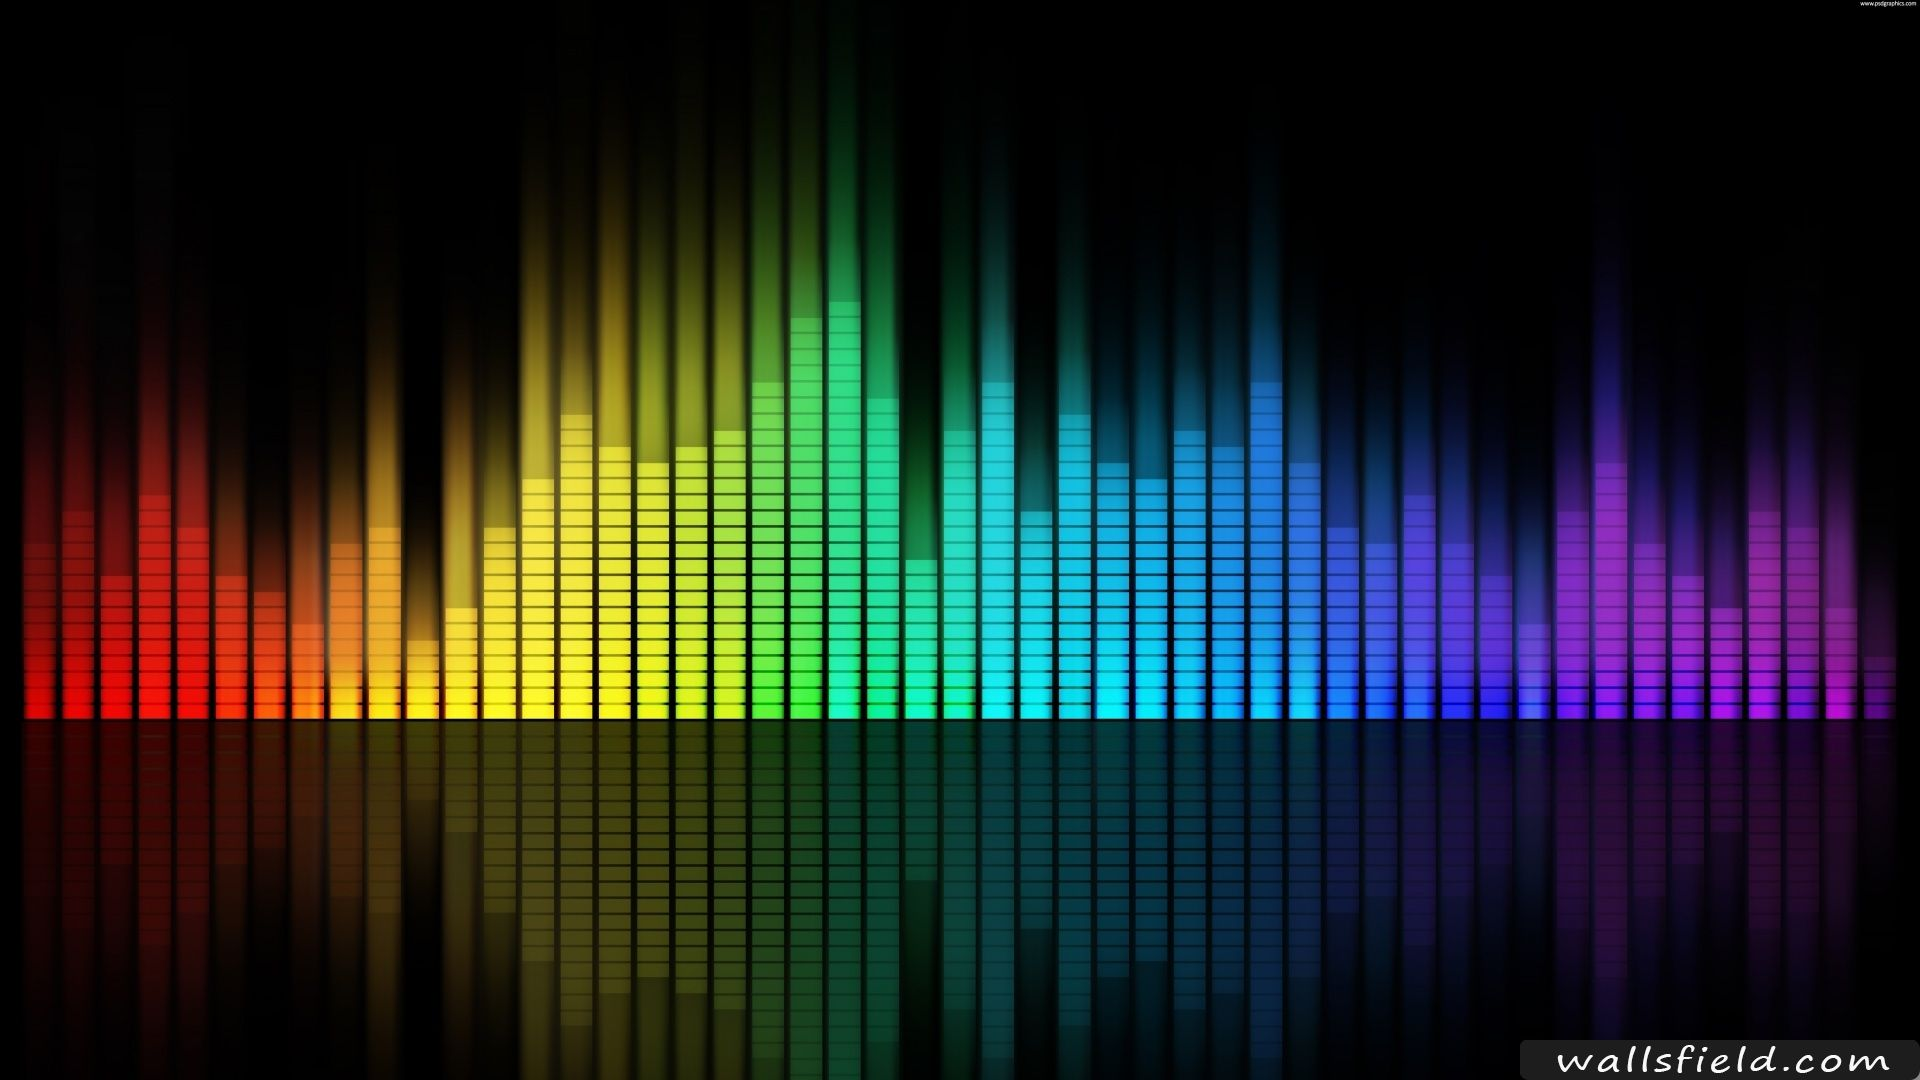 Music Equalizer Music Wallpaper Music Backgrounds Wallpaper